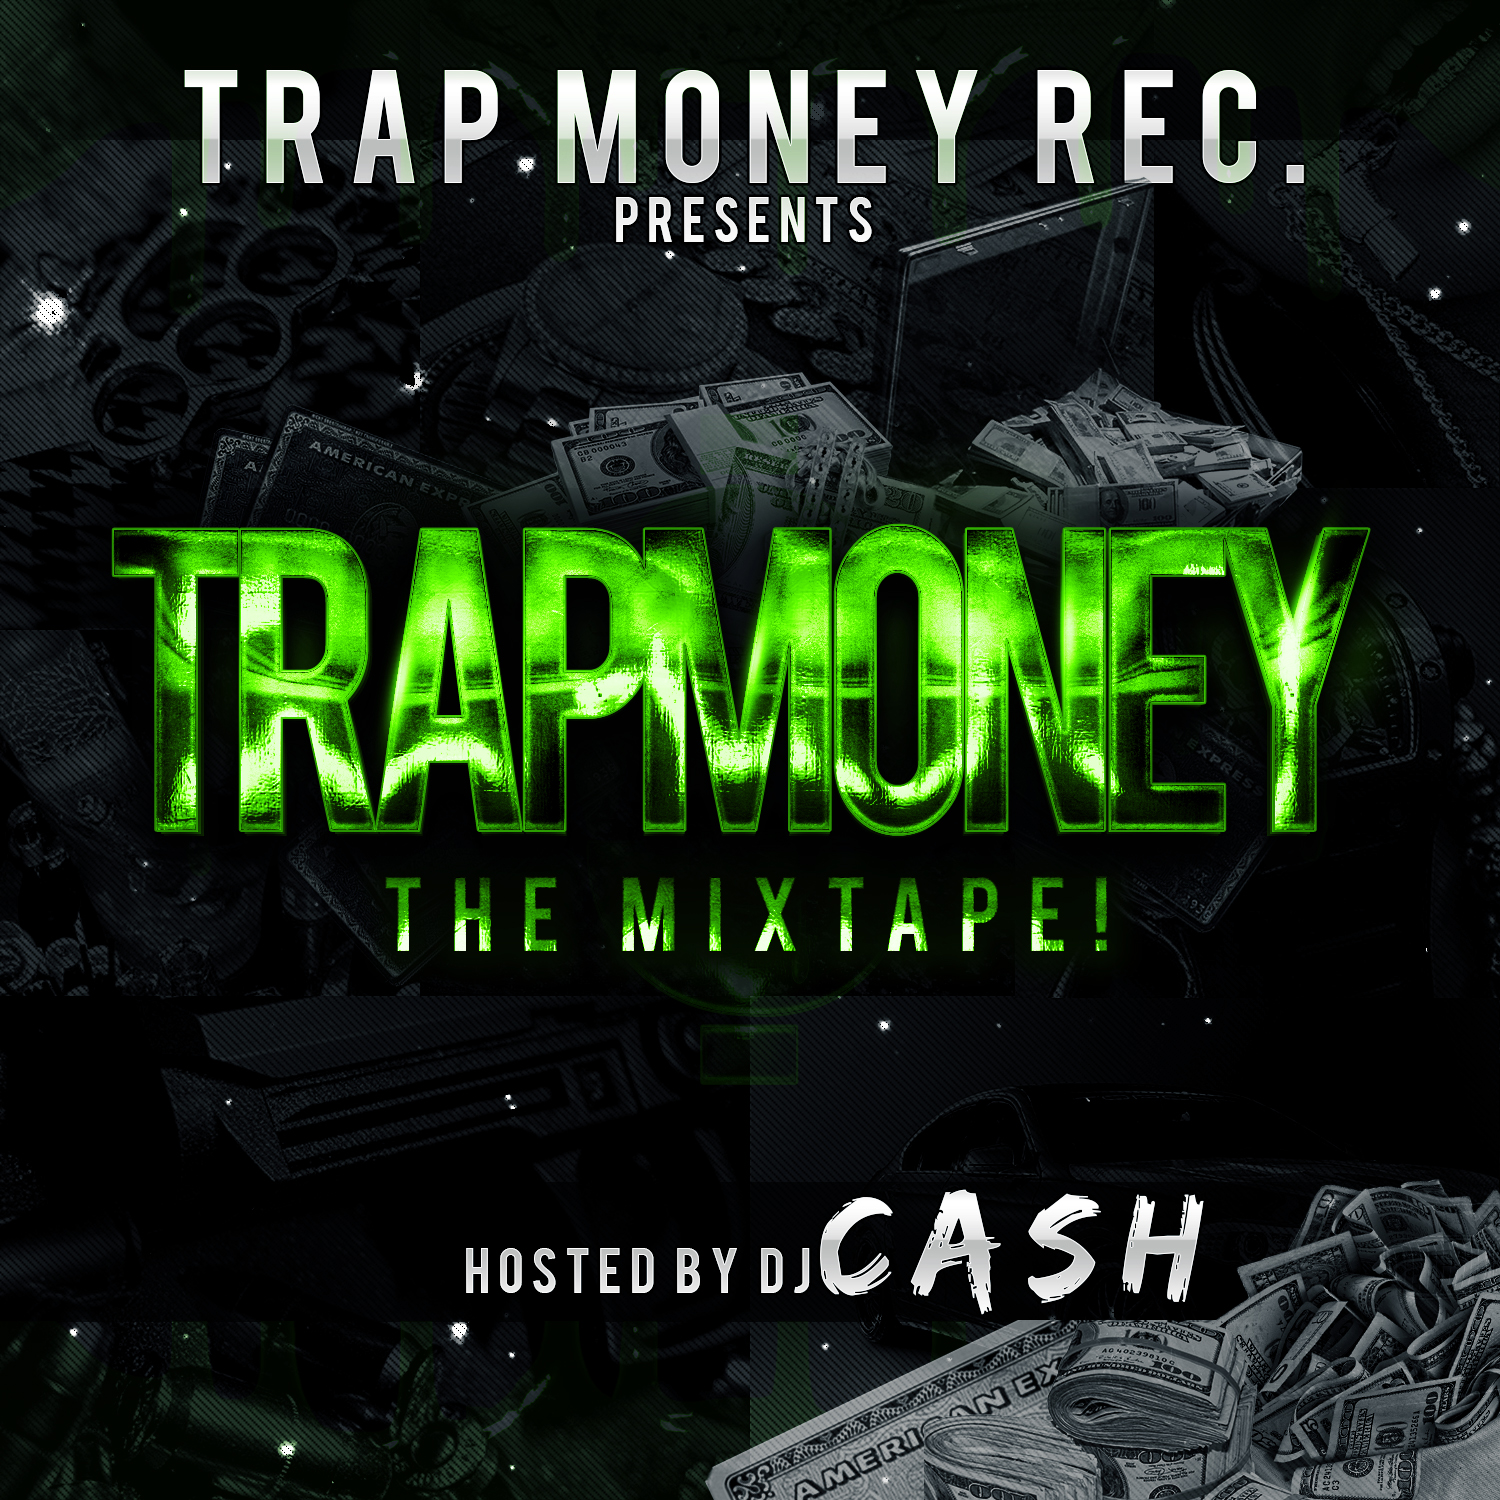 Trap Money Mixtape Cover DJ Cash Money Records - Black and Green Trap Cover PSD Photoshop Template